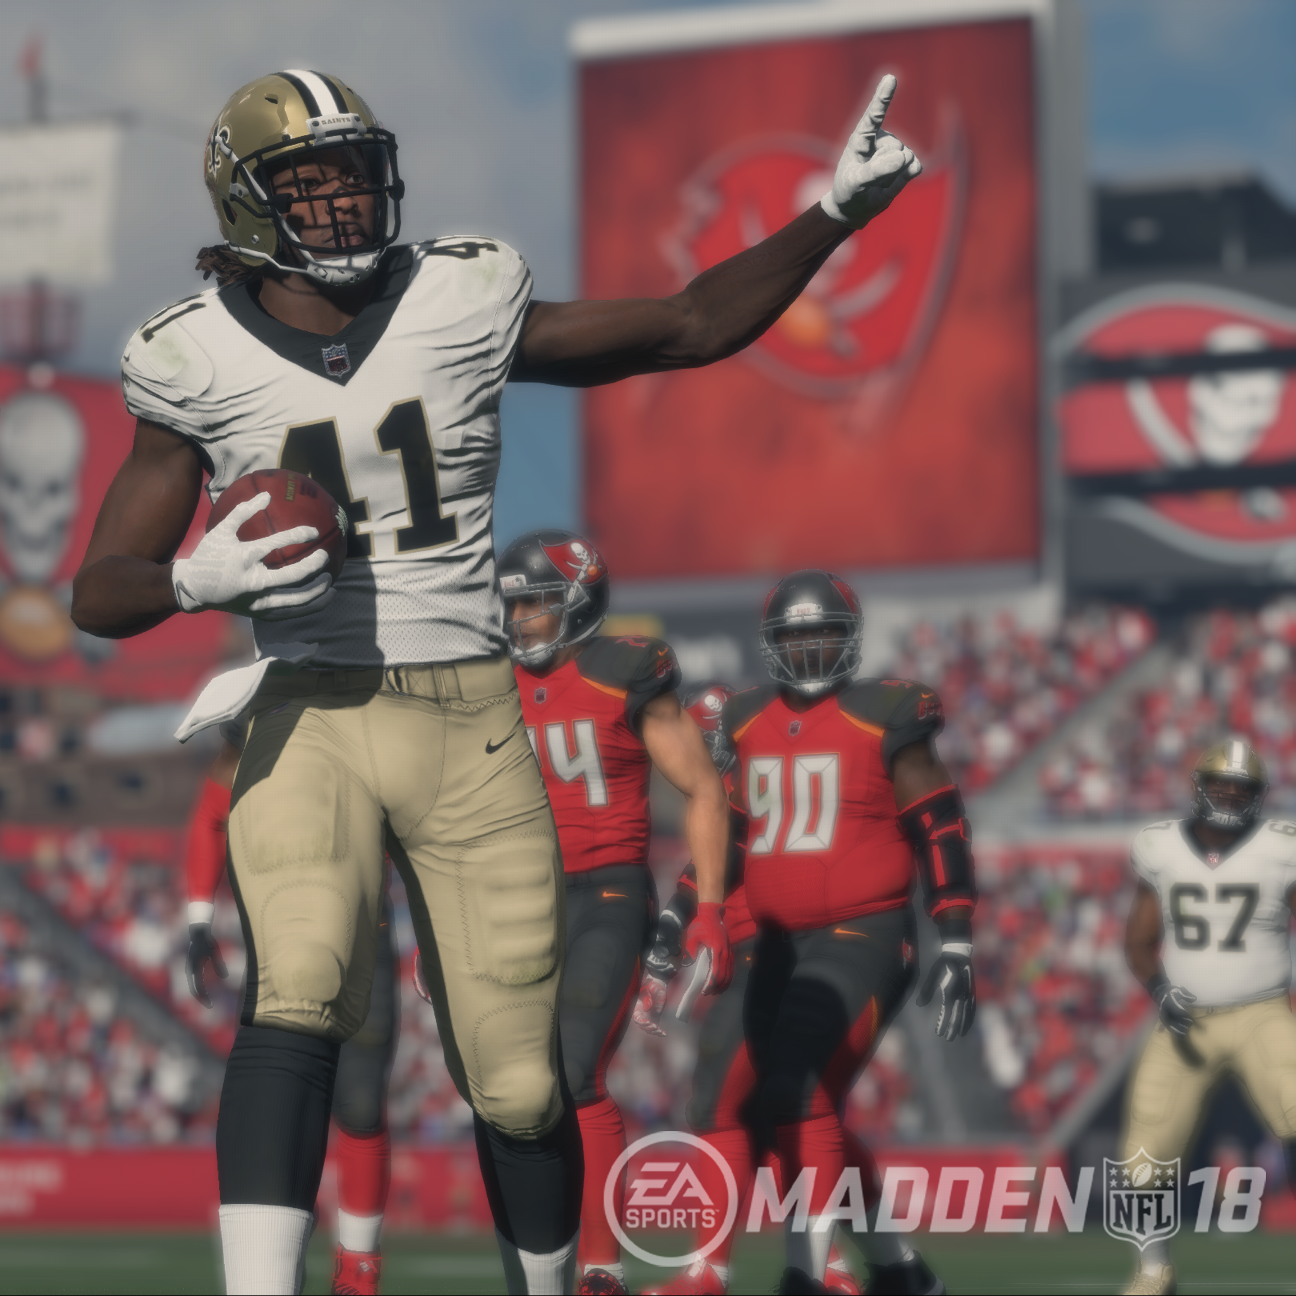 Top Rated Rookies In 'Madden NFL 18'